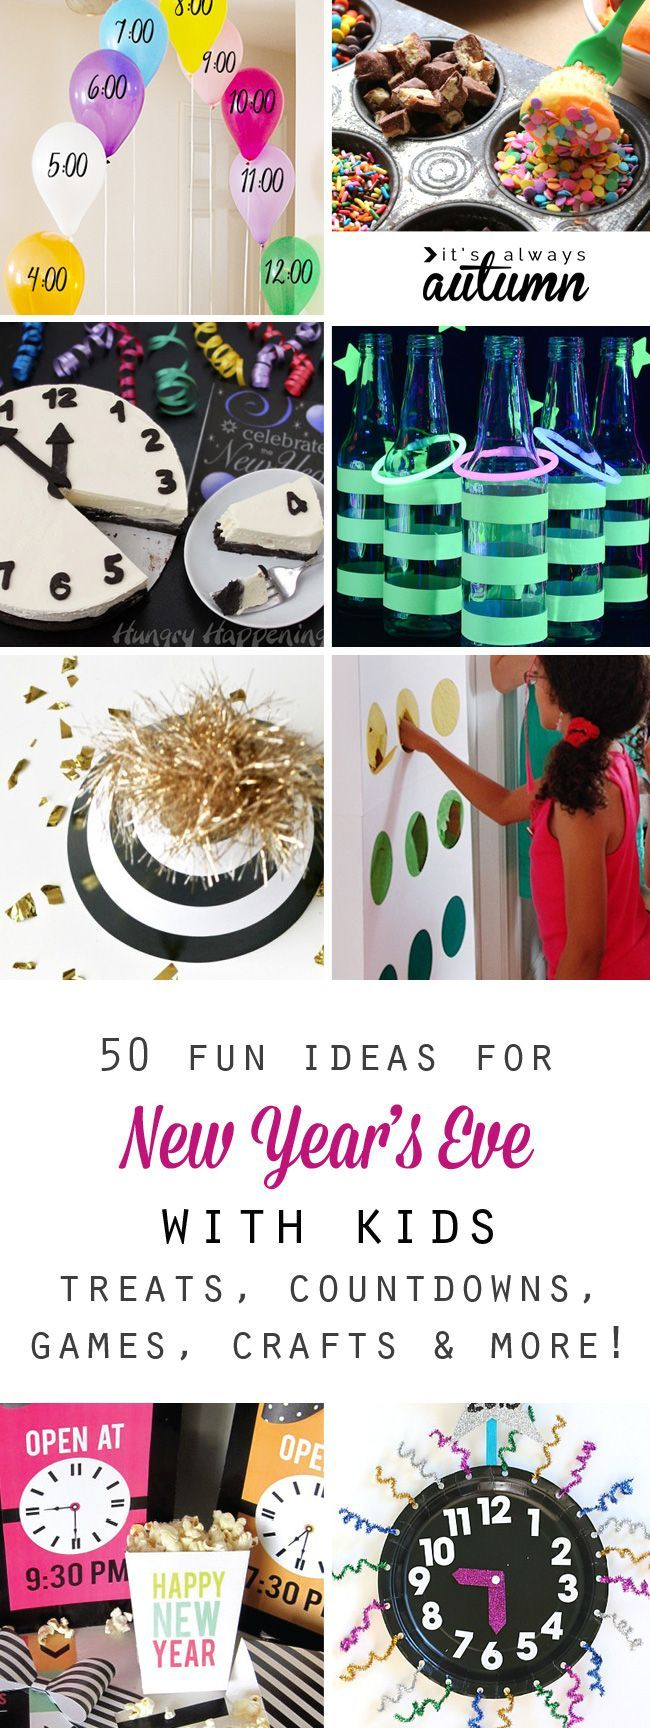 428 Best New Year 39 S Eve Images On Pinterest New Years